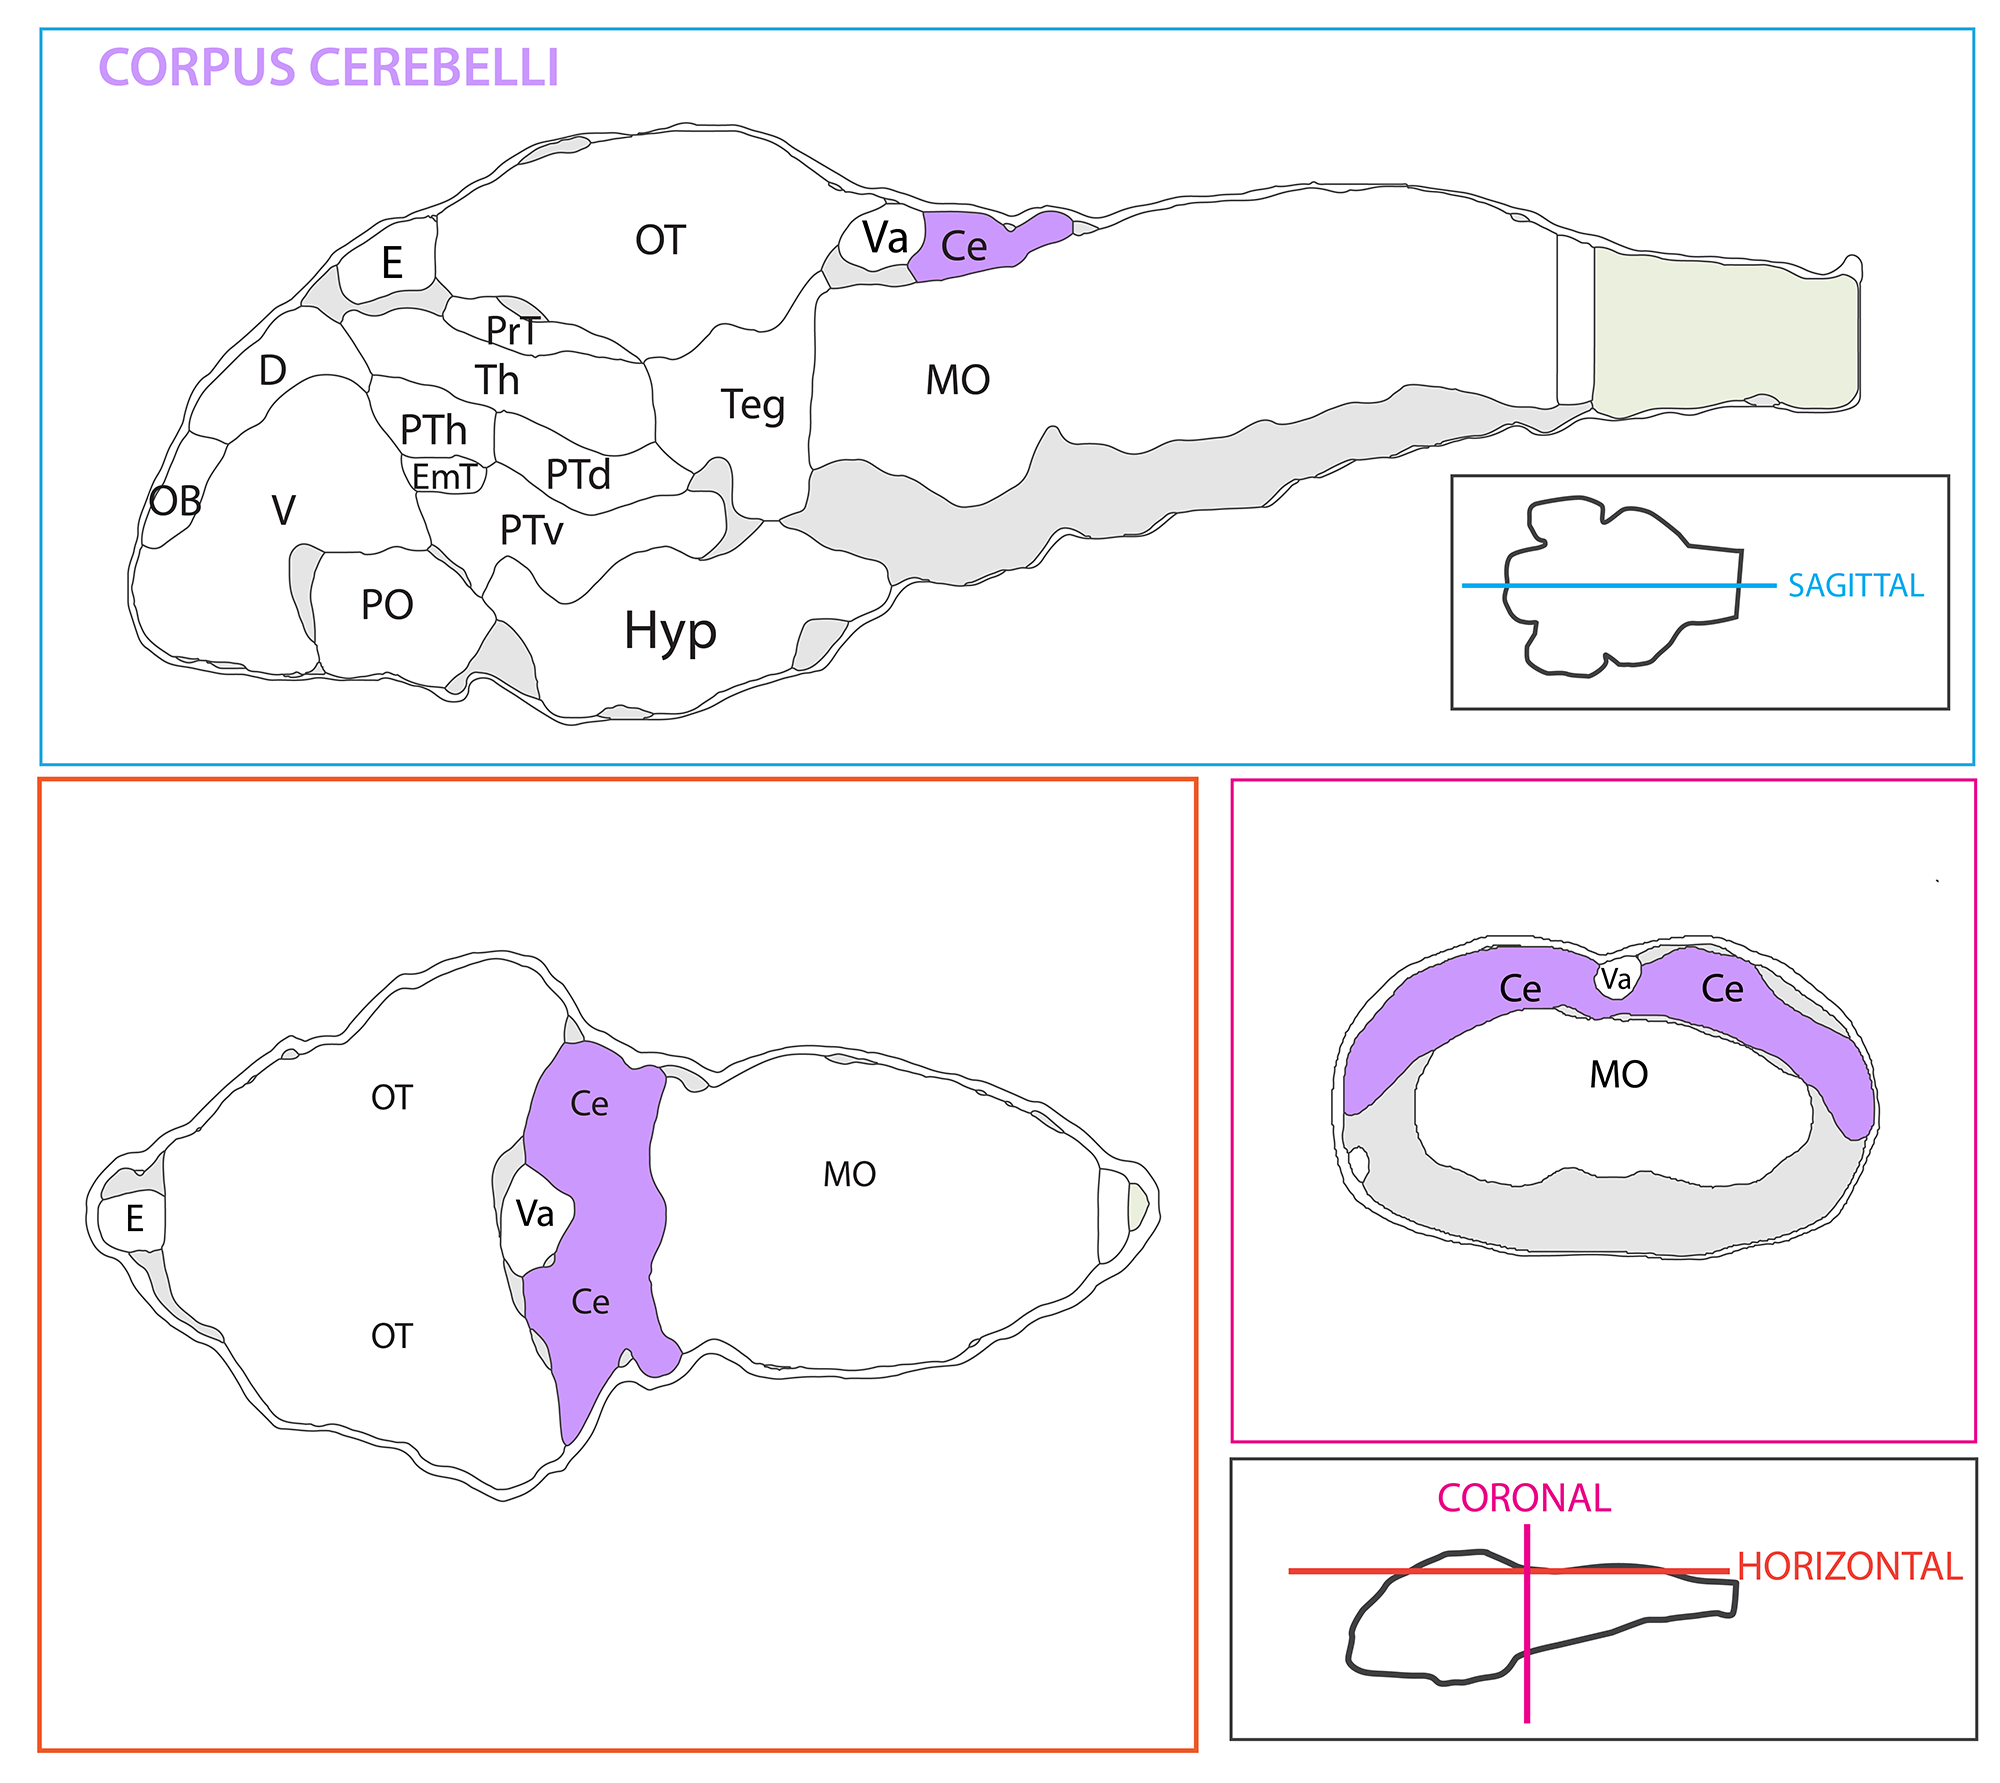 Schematic showing the position of the corpus cerebelli in sagittal, horizontal and coronal sections through the zebrafish brain.  Based on the anatomical segmentation of 3 day old zebrafish larval brain by Thomas Müller, Olaf Ronneberger, Wolfgang Driever and colleagues. For details see Ronneberger et al., Nat. Meth. 2012 and  http://vibez.informatik.uni-freiburg.de   Abbreviations: Ce, cerebellar plate; D, dorsal telencephalon/pallium; E, epiphysis; EmT, eminentia thalami; Hb, habenula; Hyp, hypothalamus; MO, medulla oblongata; OB, olfactory bulb; OT, optic tectum; PG, preglomerular complex; PO, preoptic area;PrT, pretectum; PTd, posterior tuberculum dorsal part; PTh, prethalamus; PTv posterior tuberculum ventral part; Teg, tegmentum; Th, thalamus; TS, torus semicircularis; V, ventral telencephalon/subpallium; Va, valvula cerebelli.